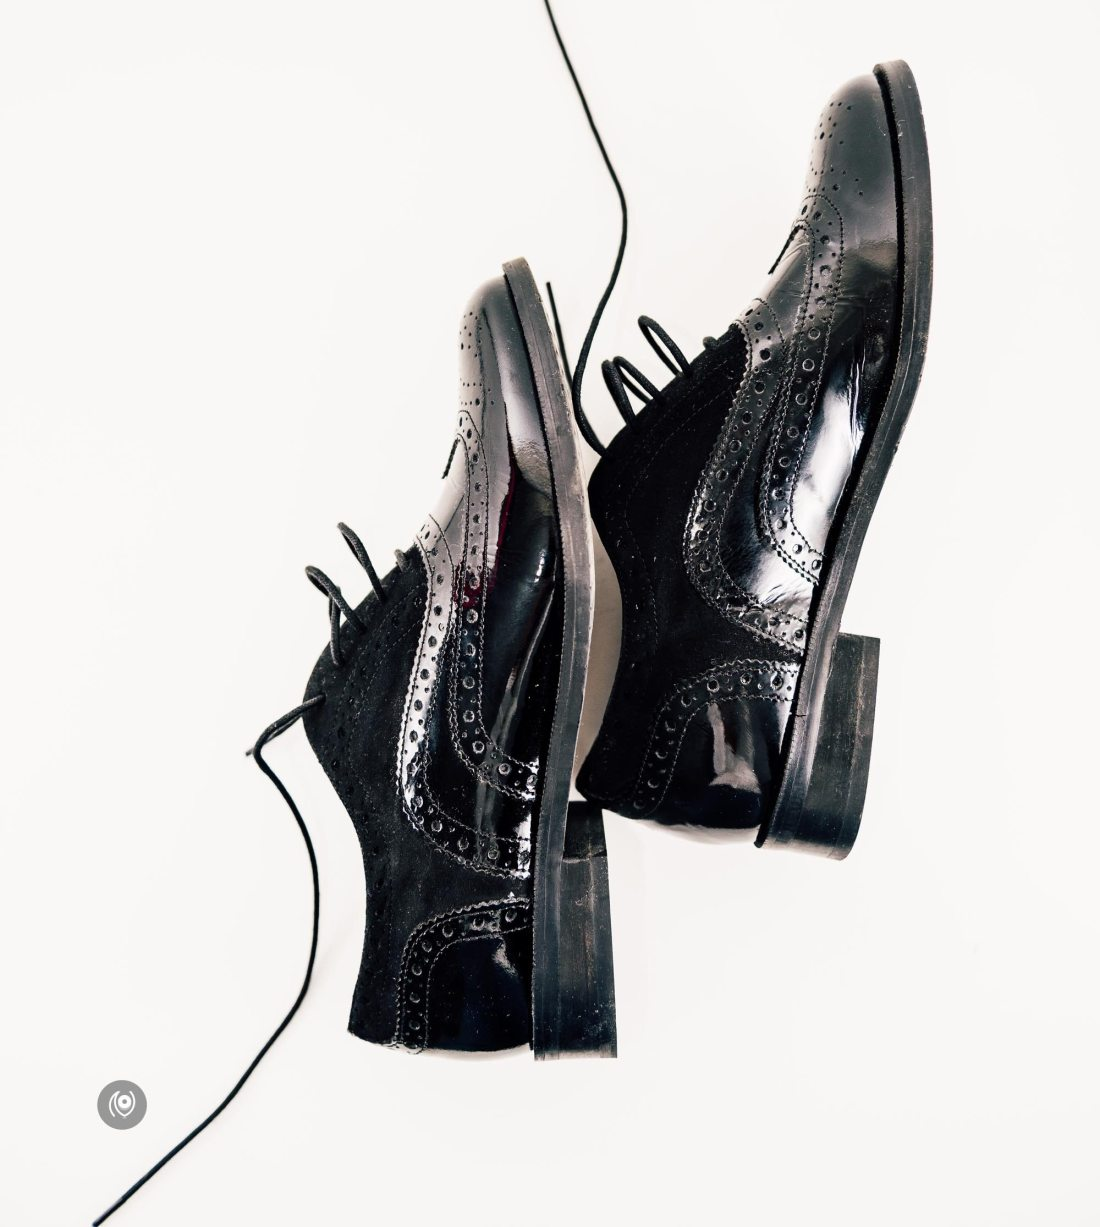 Vanilla Moon Shoes, Palma Black Leather Suede, Brogues, Footwear, #MadeInIndia Naina.co, Naina Redhu, Luxury Photographer, Lifestyle Photographer, Luxury Blogger, Lifestyle Blogger, #EyesForFashion, Experience Collector